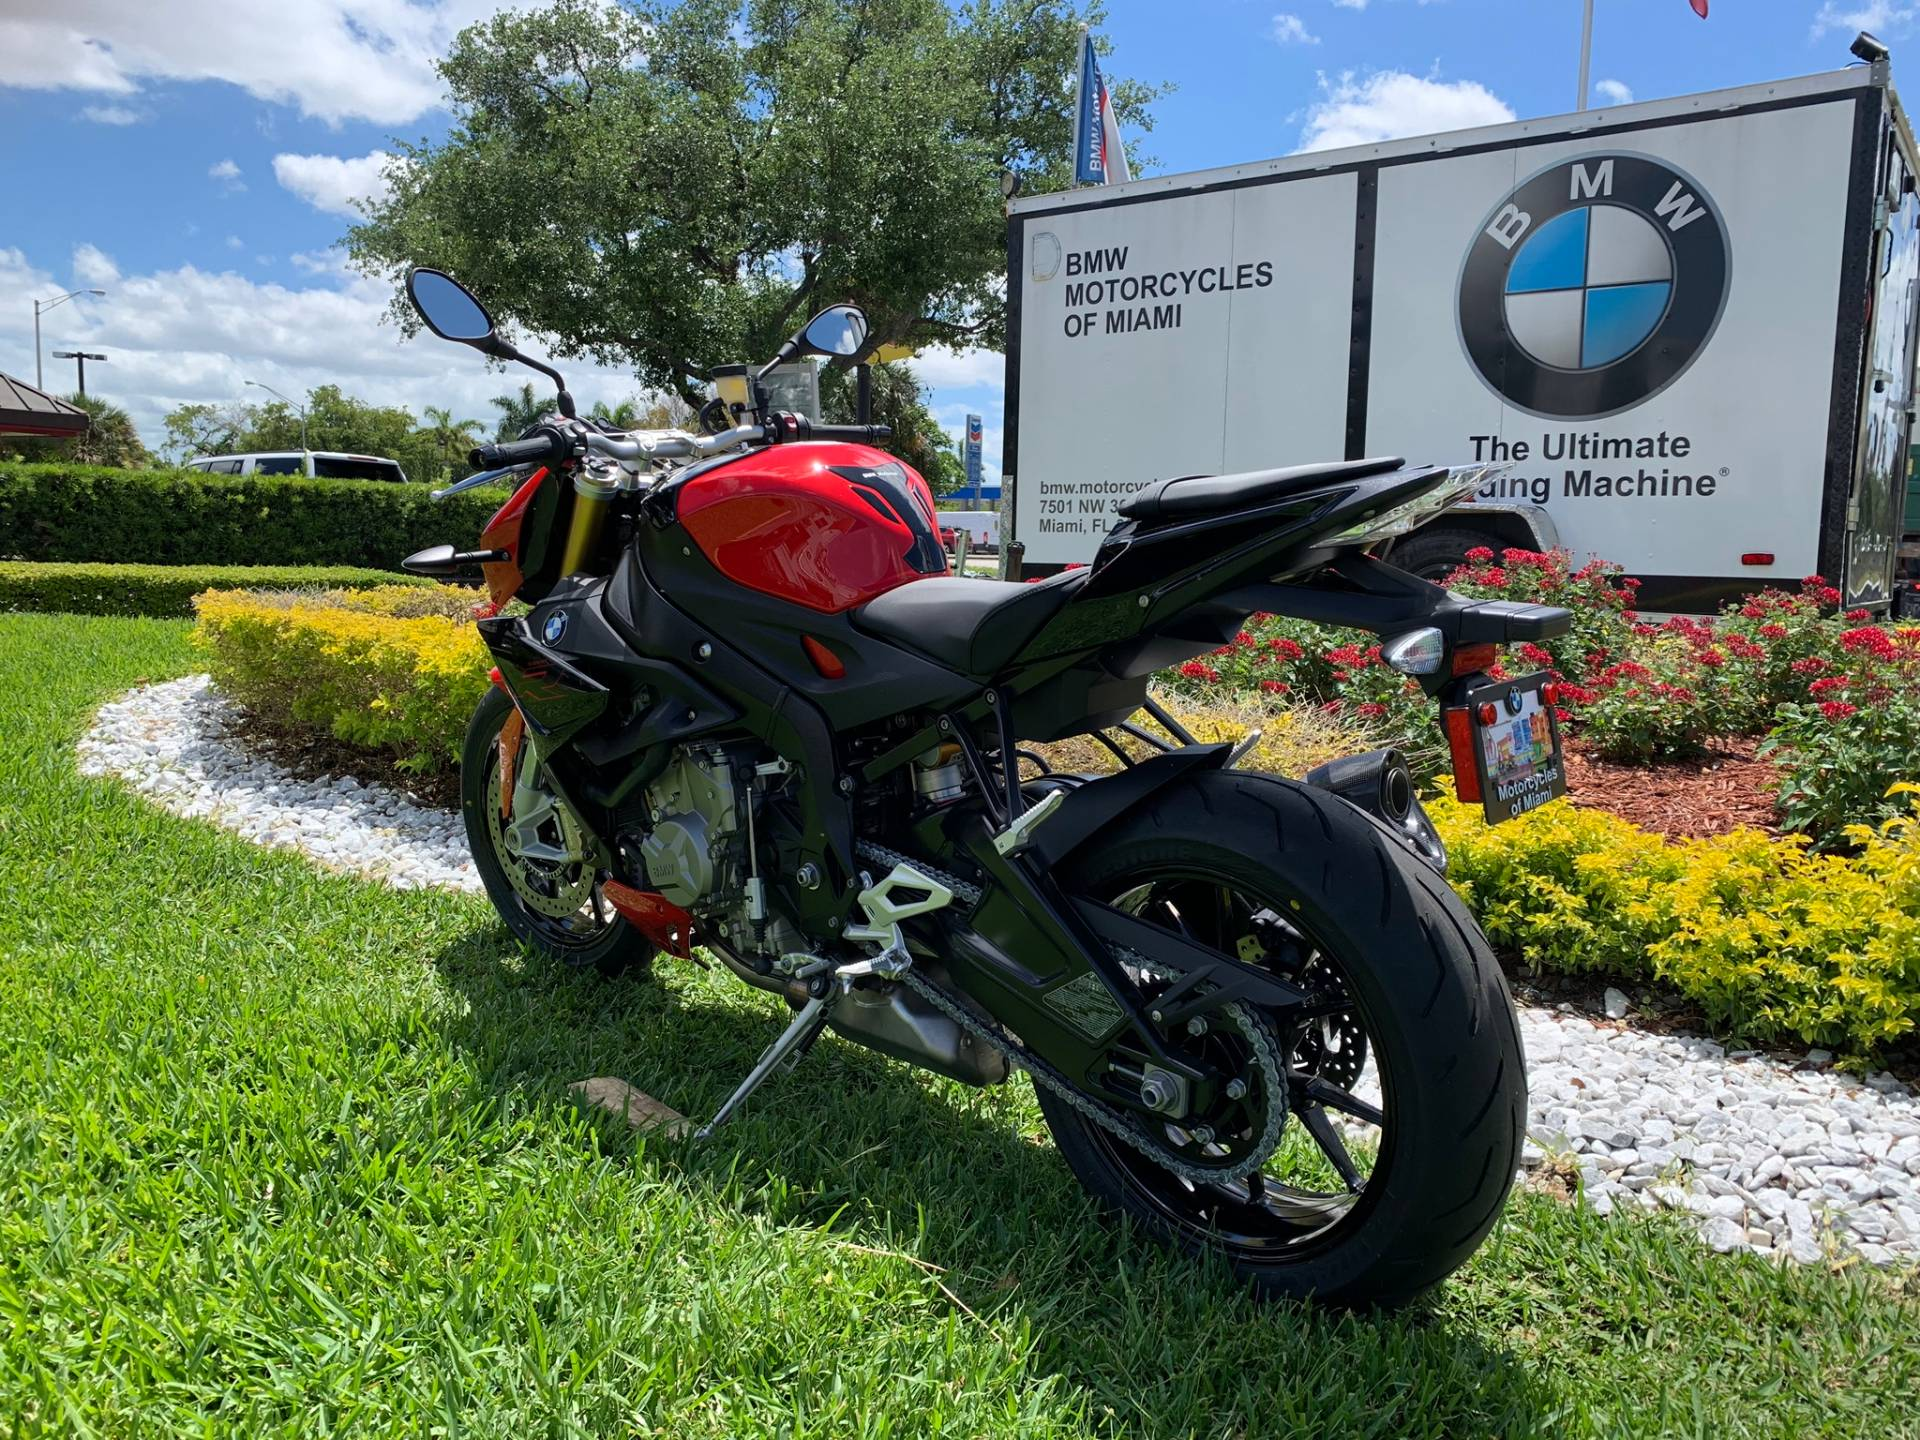 New 2019 BMW S 1000 R for sale, BMW S 1000R for sale, BMW Motorcycle S1000R, new BMW R, Sport, roadster, naked. BMW Motorcycles of Miami, Motorcycles of Miami, Motorcycles Miami, New Motorcycles, Used Motorcycles, pre-owned. #BMWMotorcyclesOfMiami #MotorcyclesOfMiami #MotorcyclesMiami - Photo 10